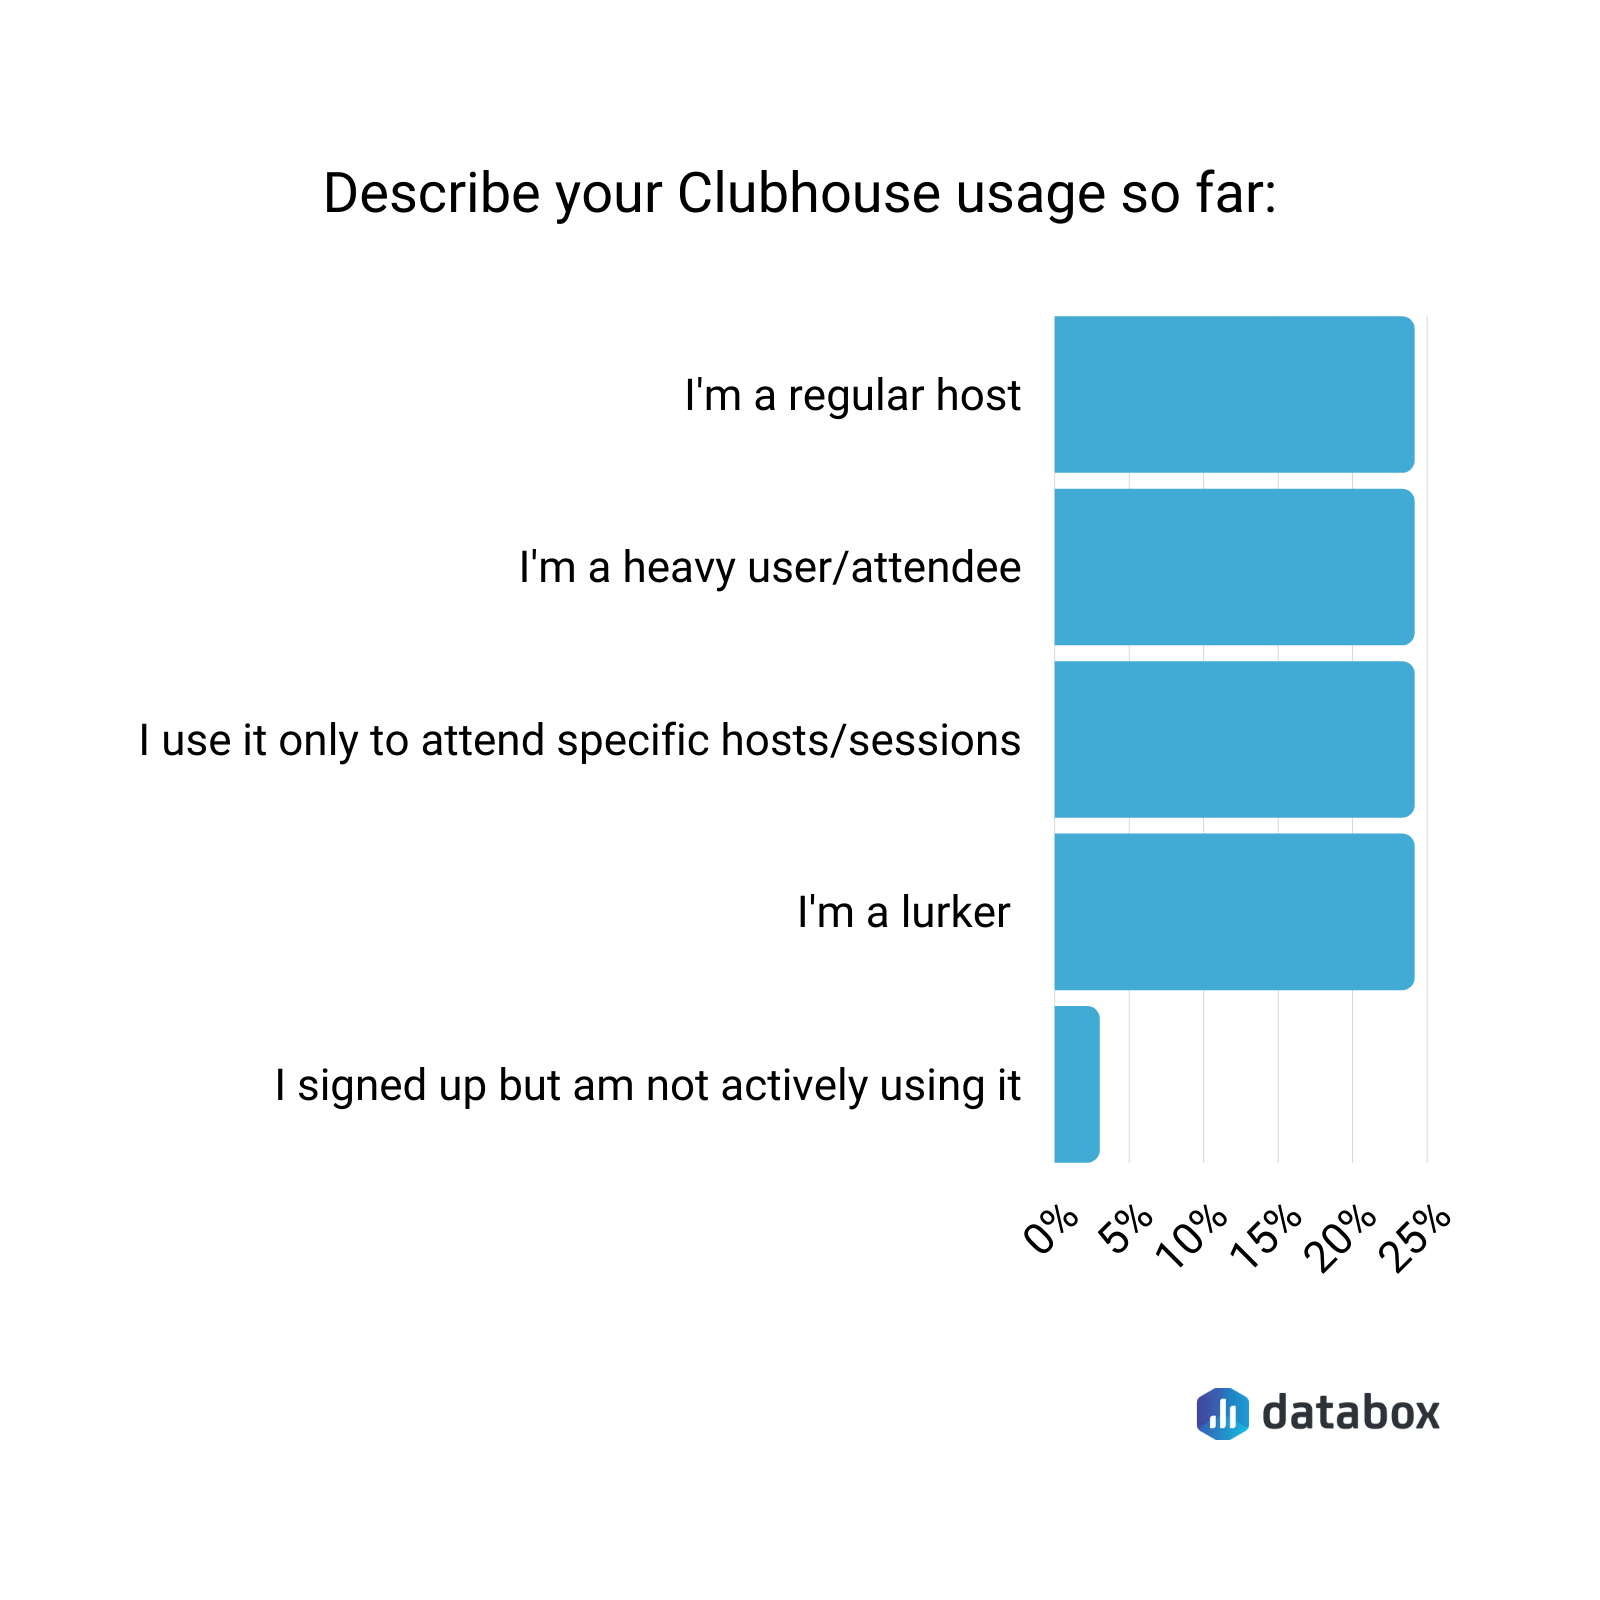 clubhouse usage data chart